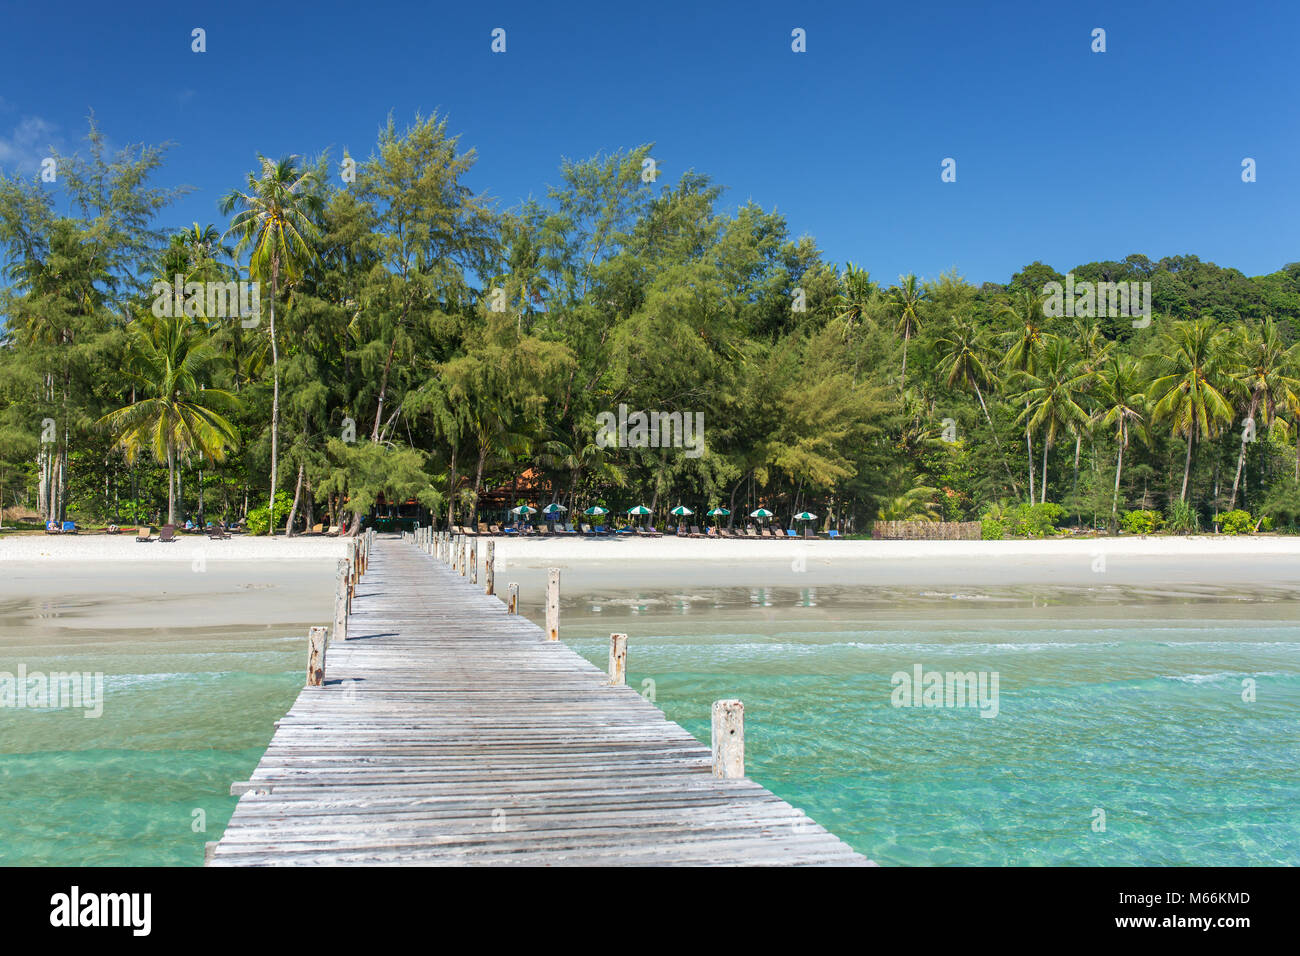 Wooden pier to a tropical island beach on Koh Kood island during day time, Thailand. - Stock Image